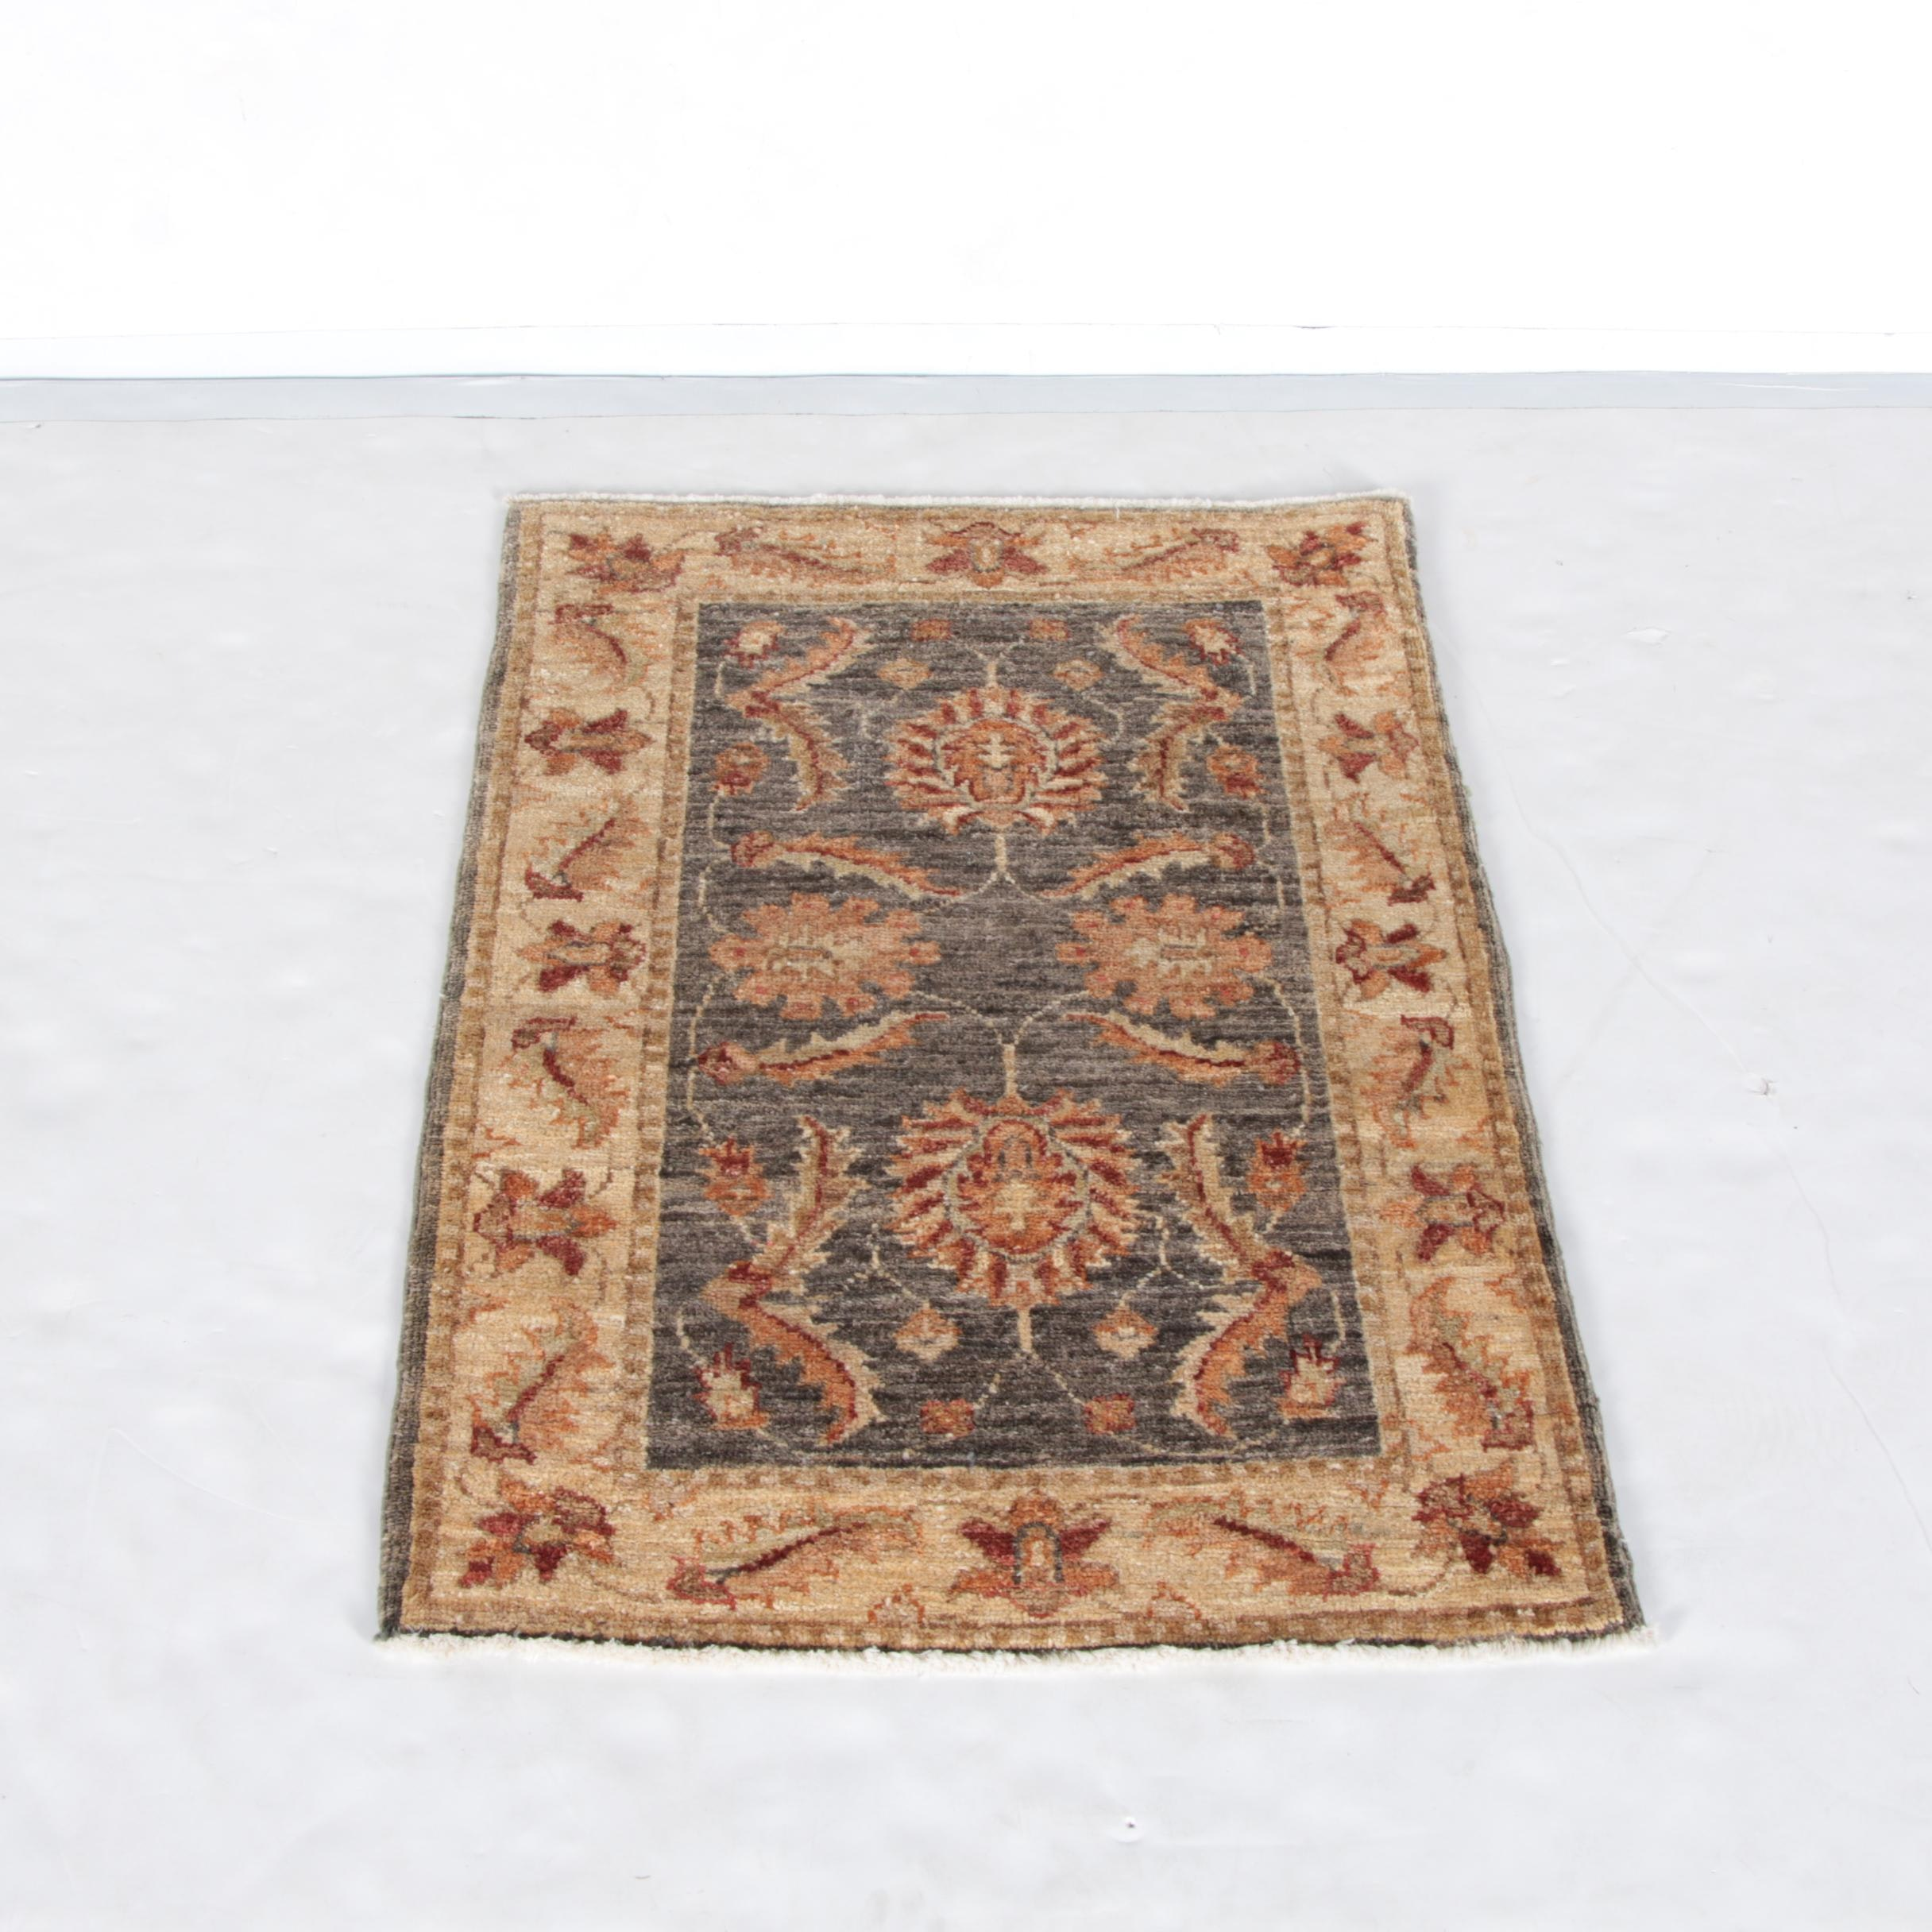 Hand-Knotted Peshawar Style Wool Accent Rug